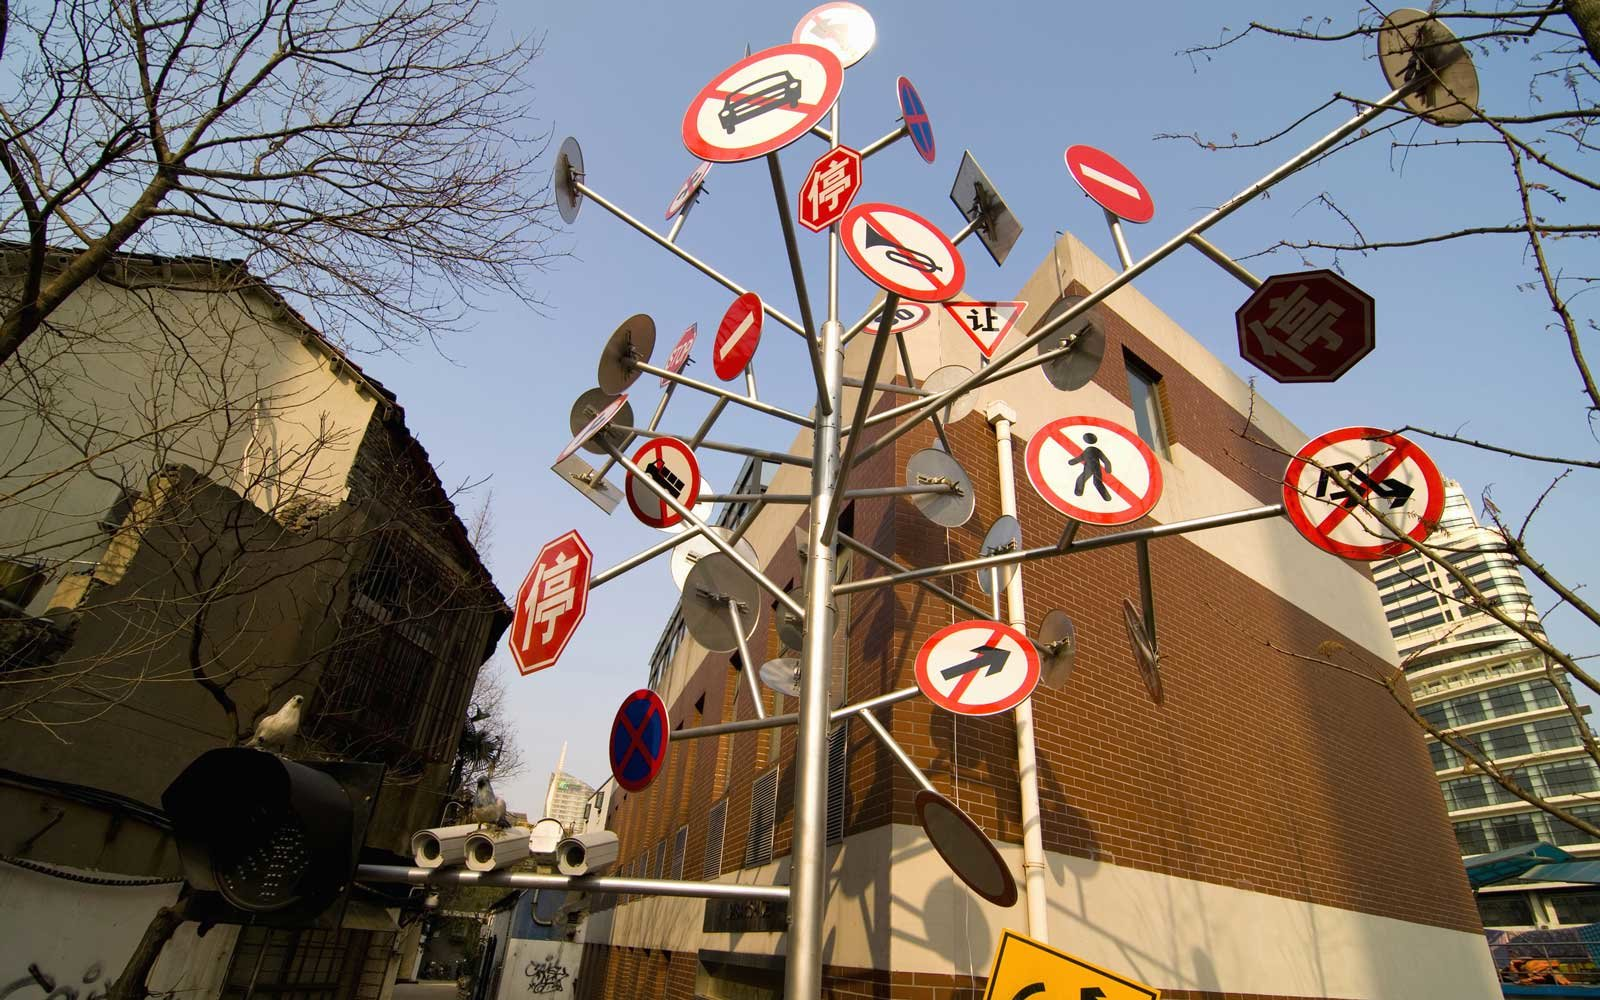 Traffic signs installation in artistic area M50, Shanghai, China